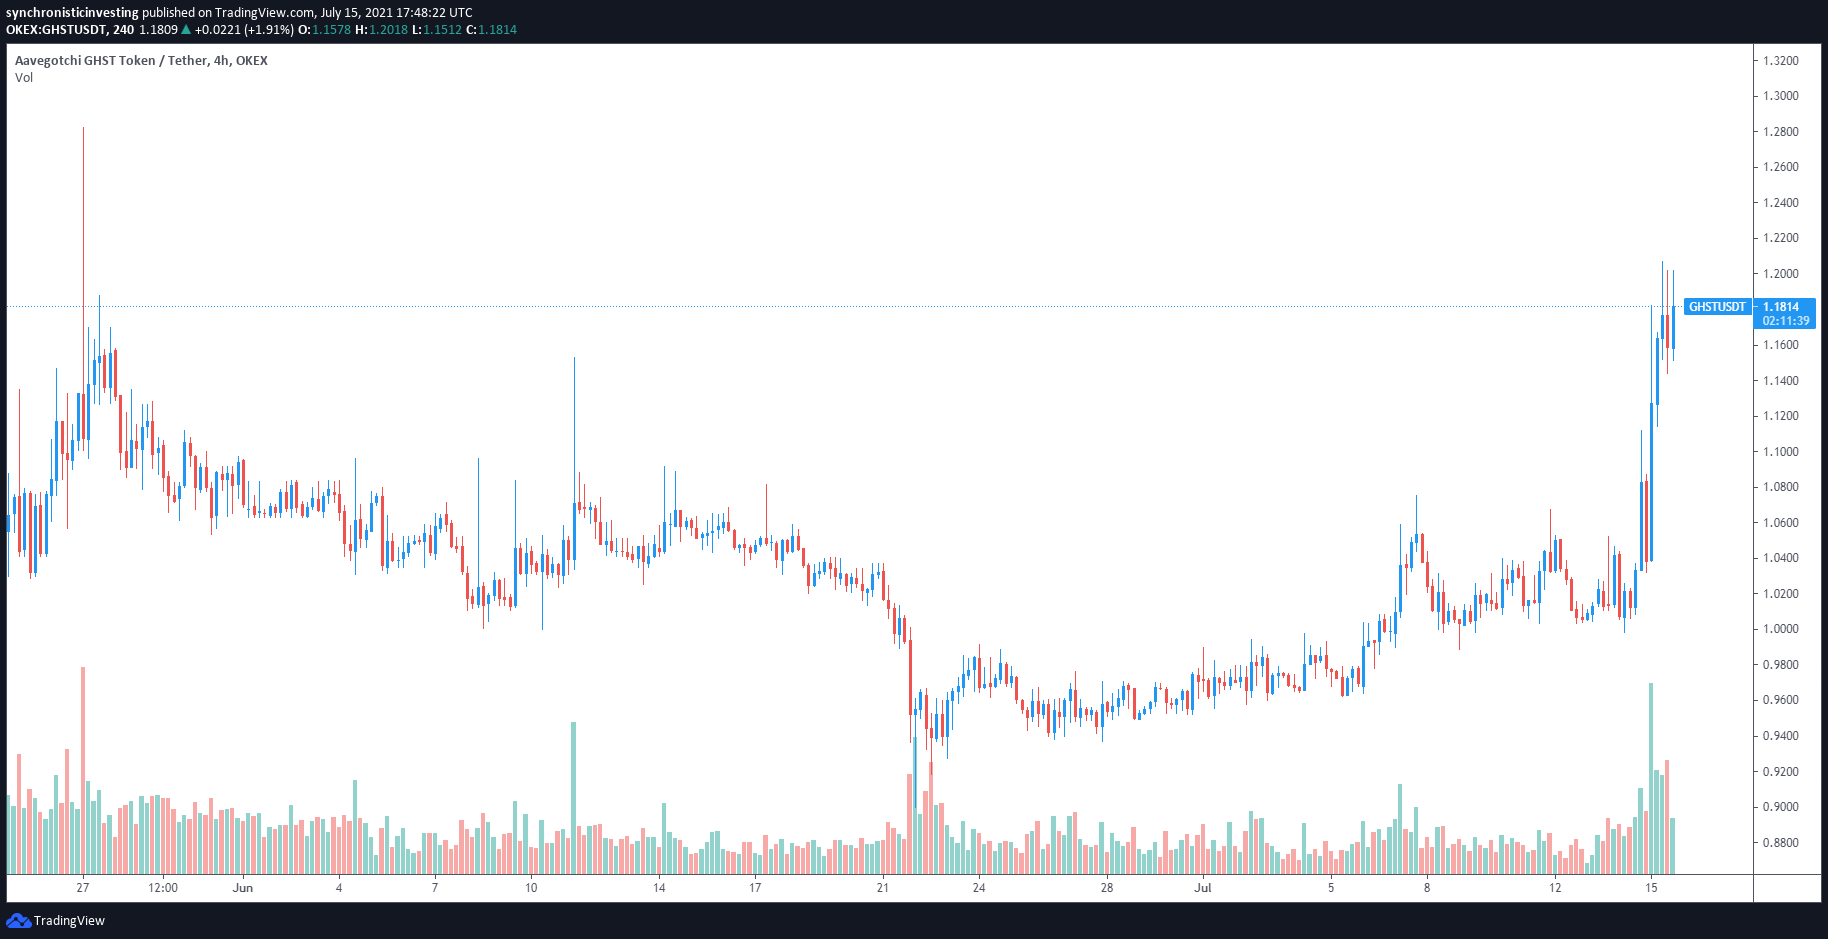 3 altcoins showing signs of accumulation while Bitcoin price is down